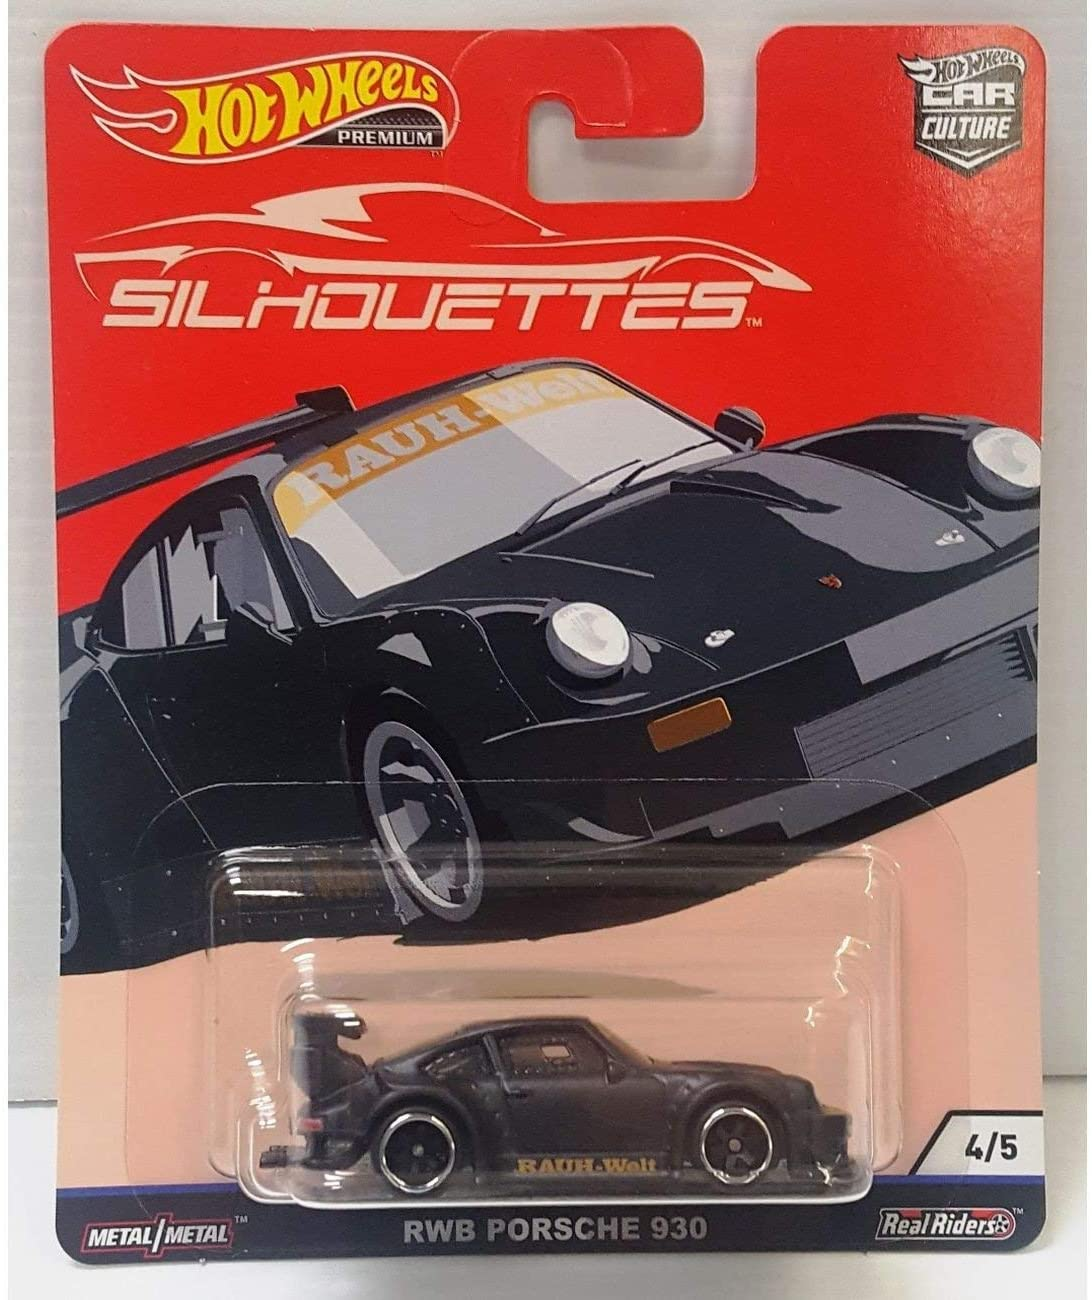 HOT WHEELS RWB PORSCHE 930 Vehicle